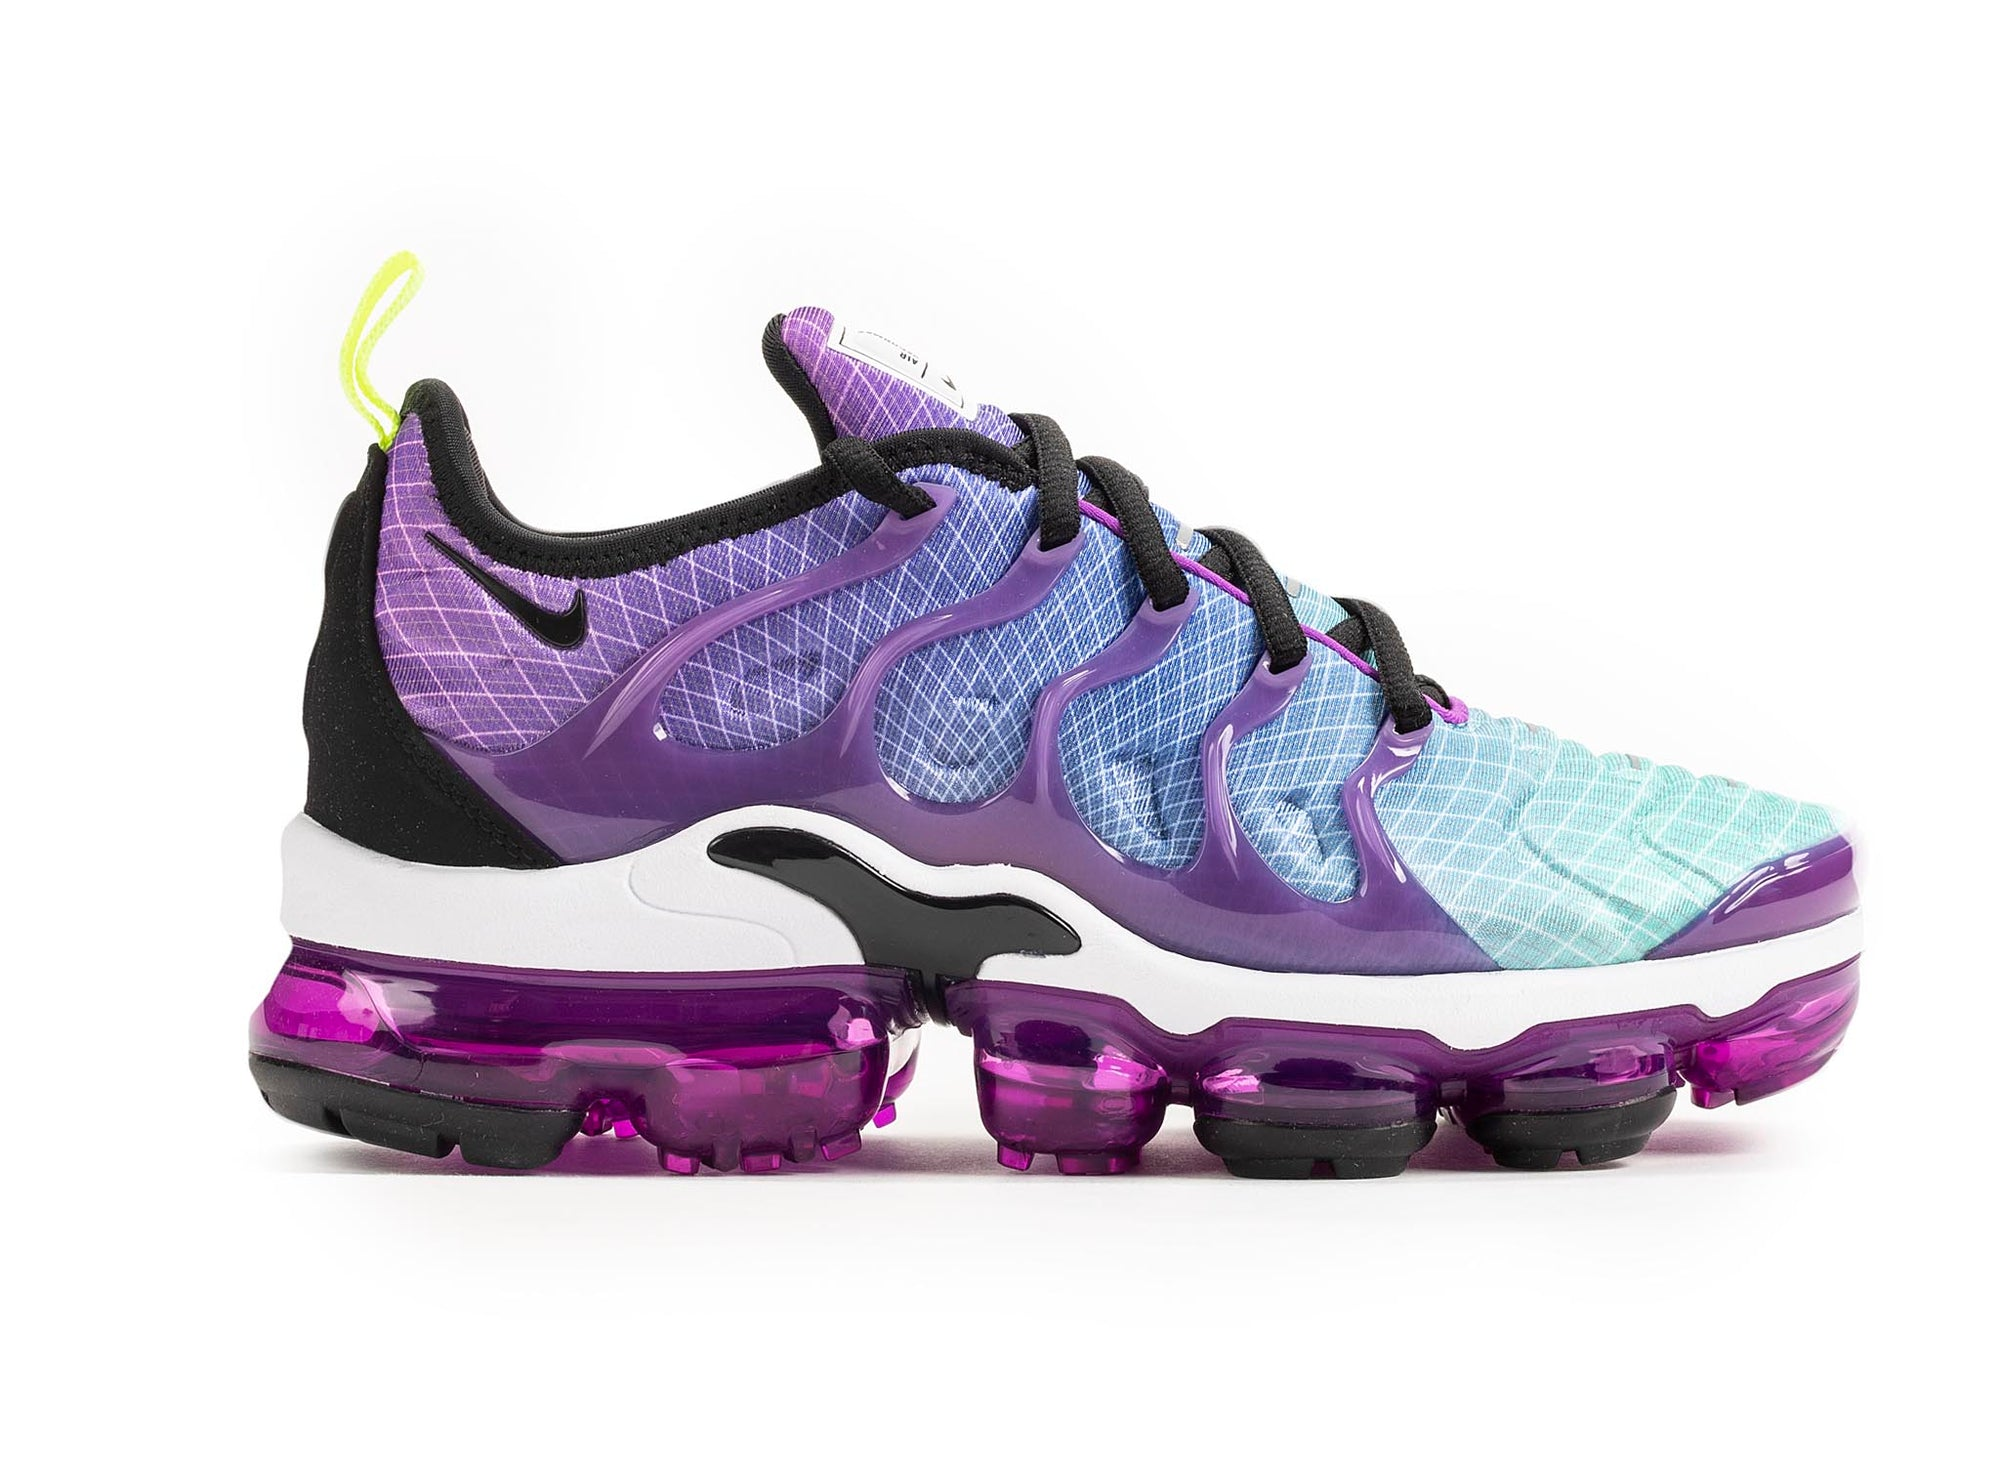 Women's Nike Air Vapormax Plus 'Hyper Violet'